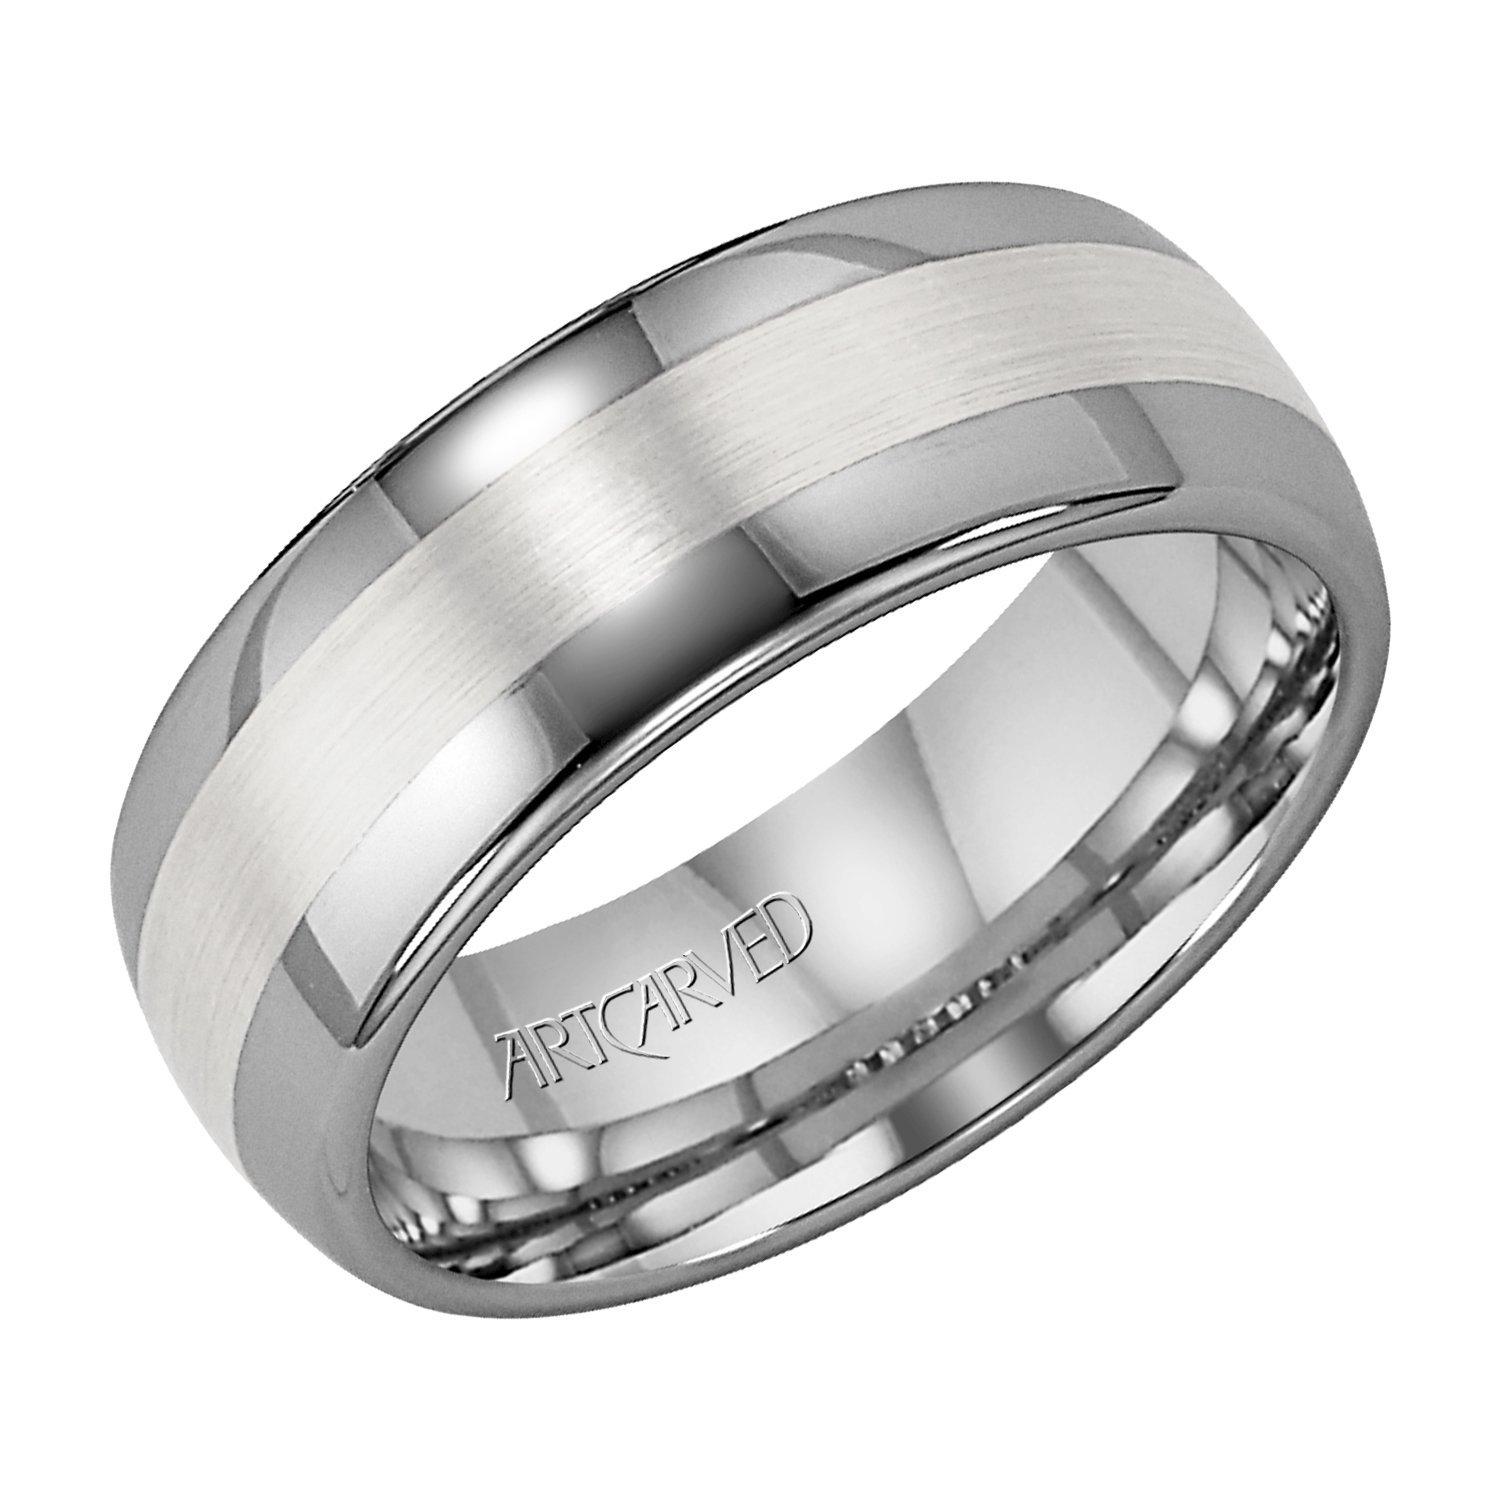 tungsten today wedding mm men carbide mens jewelry rings watches free dome overstock shipping band product s engagement